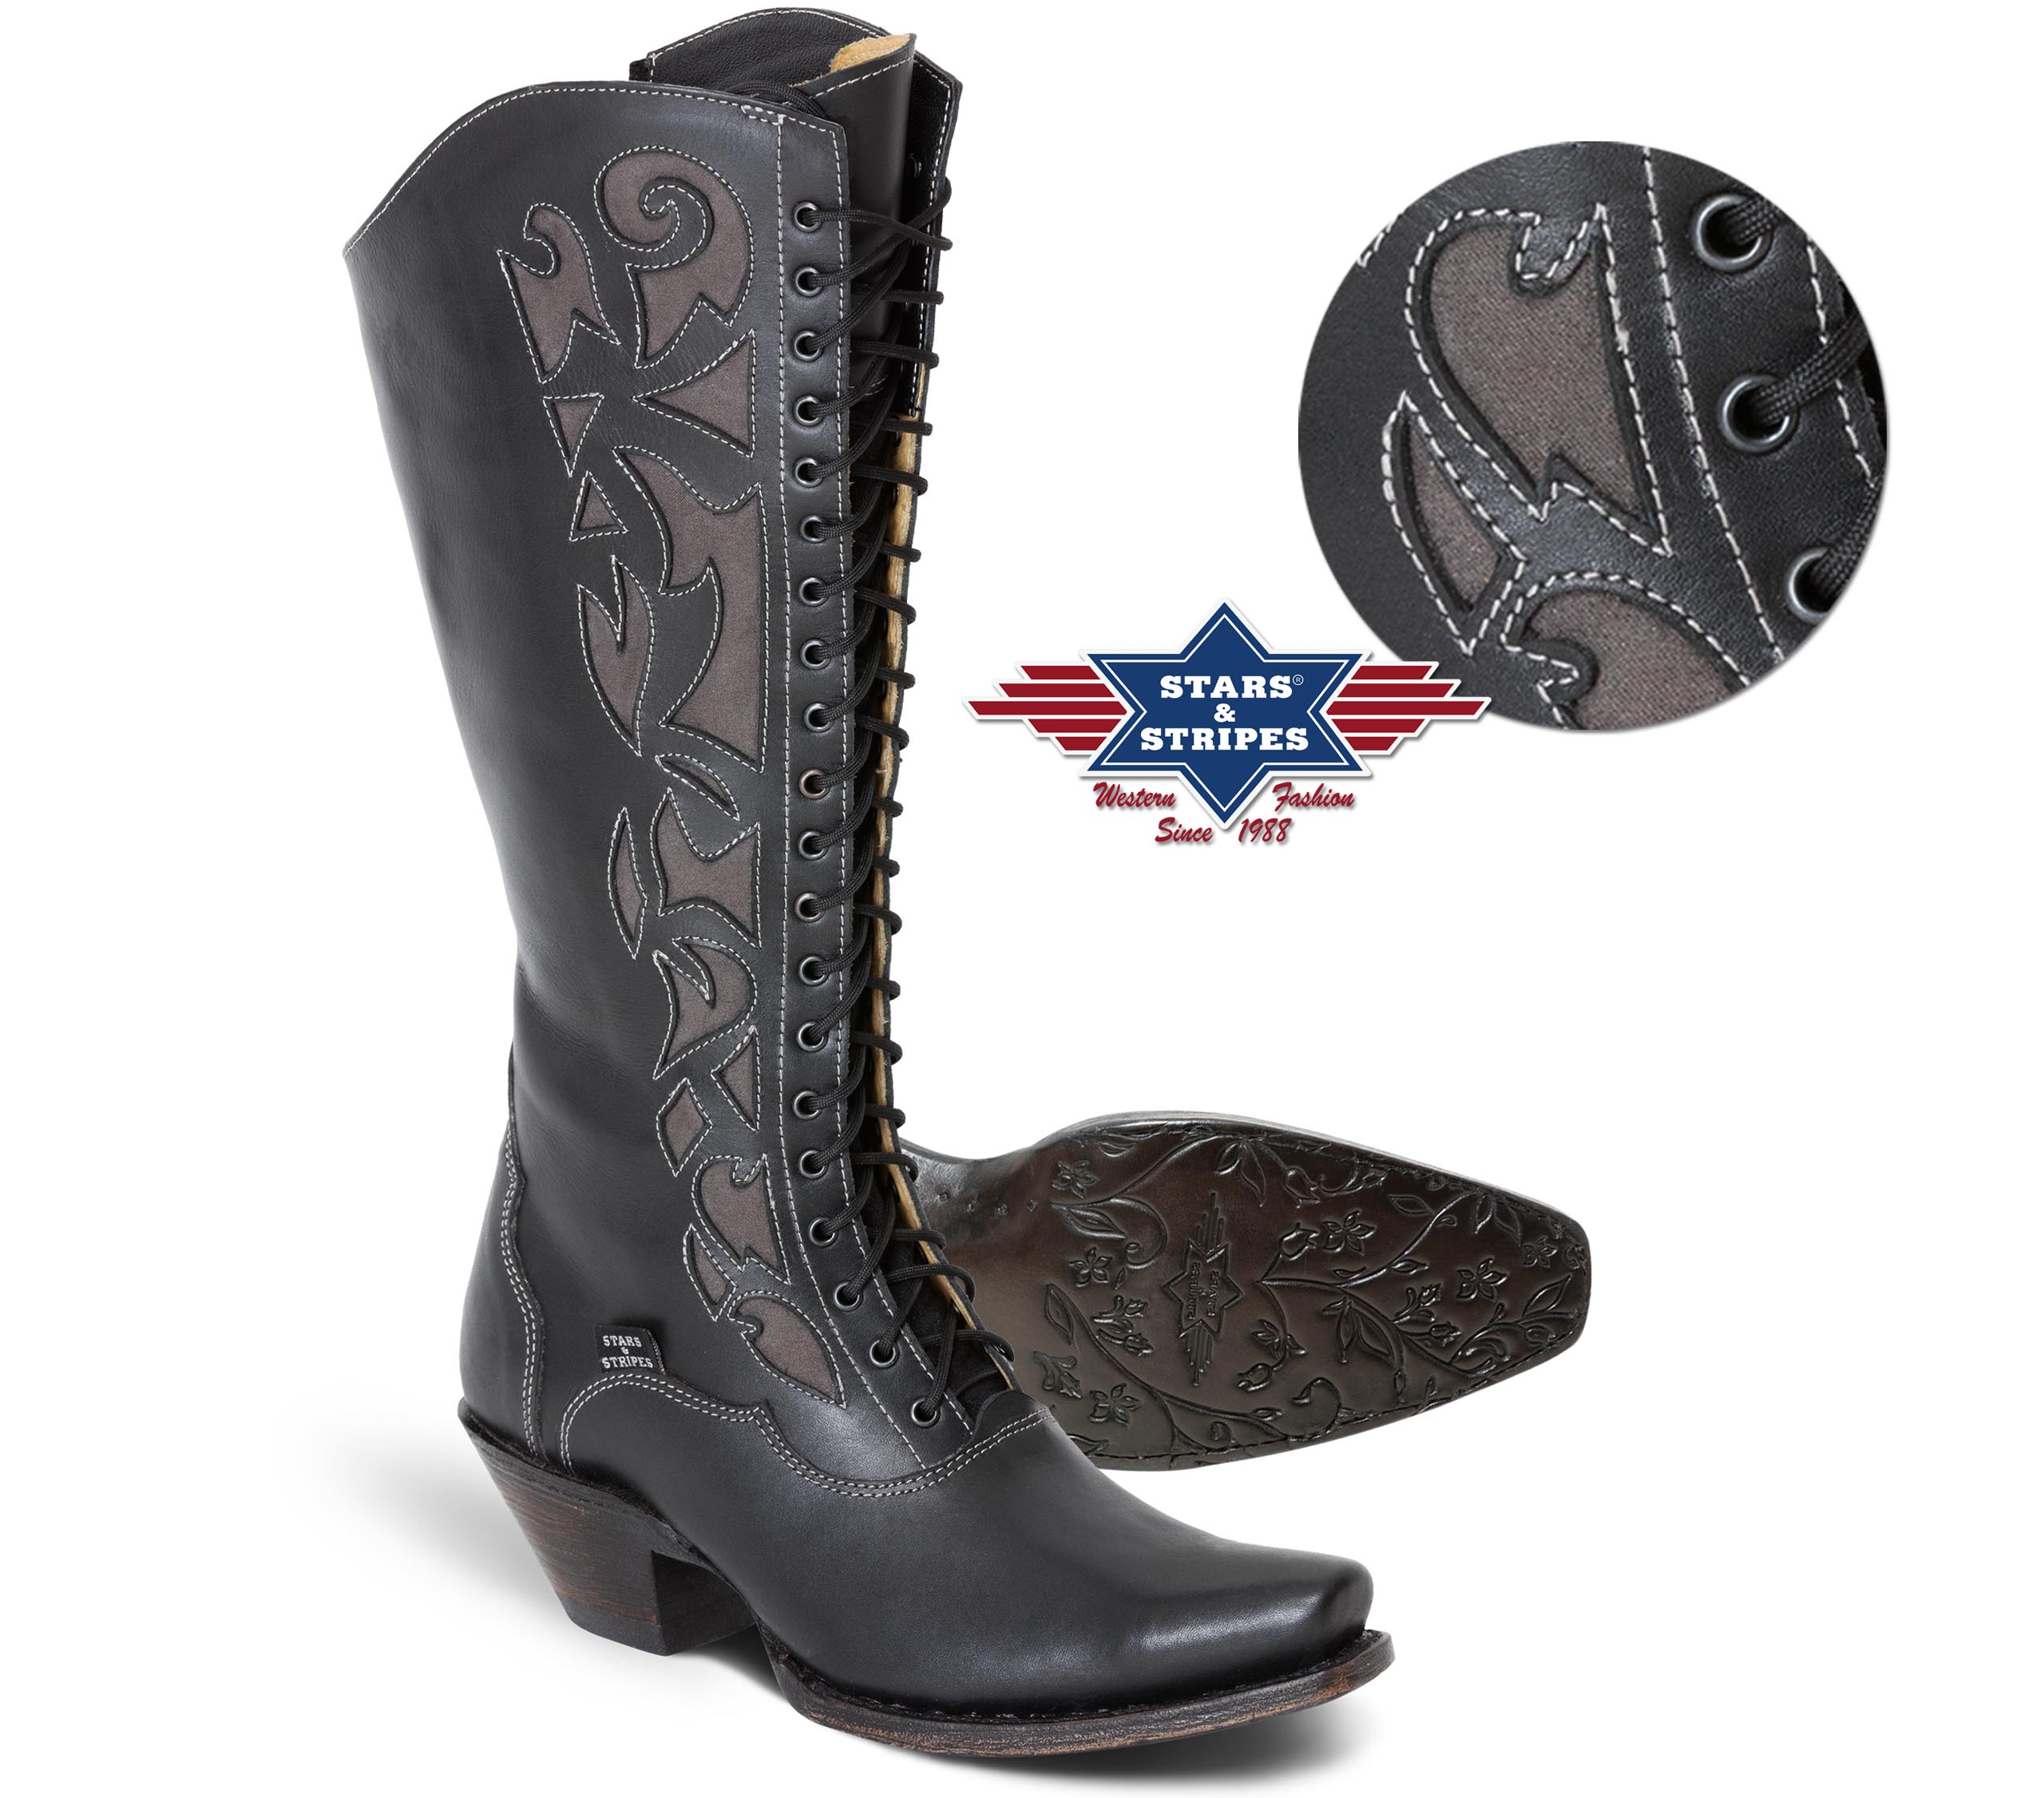 Stivali alti in pelle Stars & Stripes black con lacci